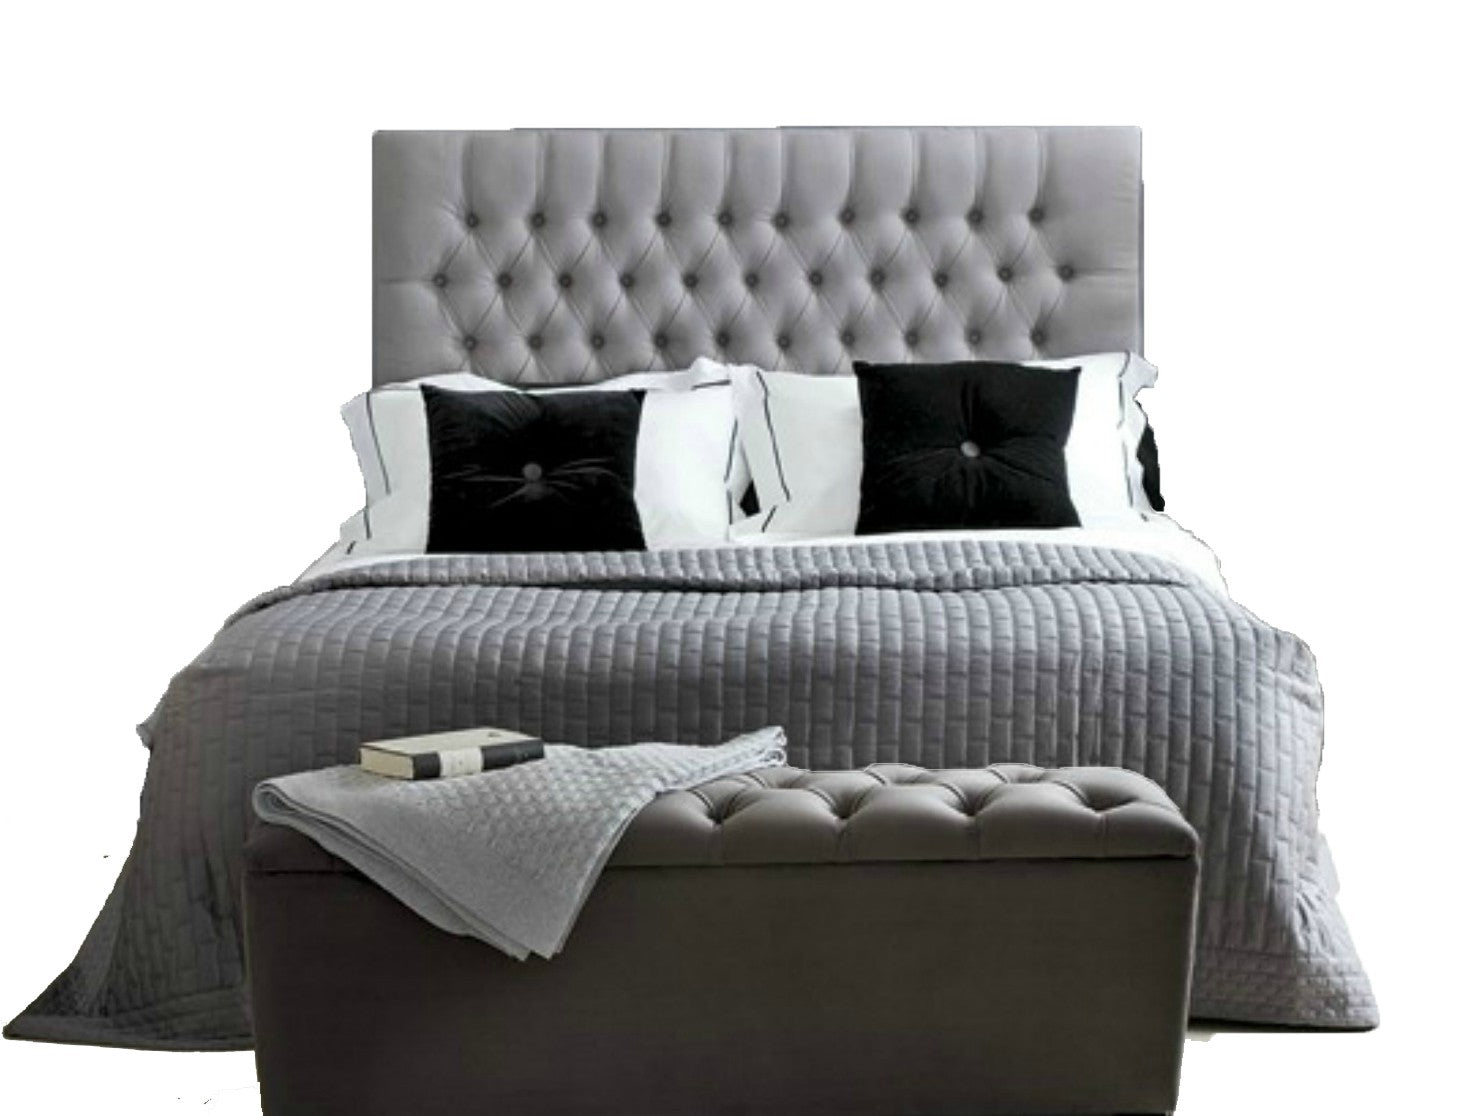 Headboard Chenile Fabric - 2 Drawers 4ft Small Double Light Grey Divan Bed with Orthopaedic Mattress